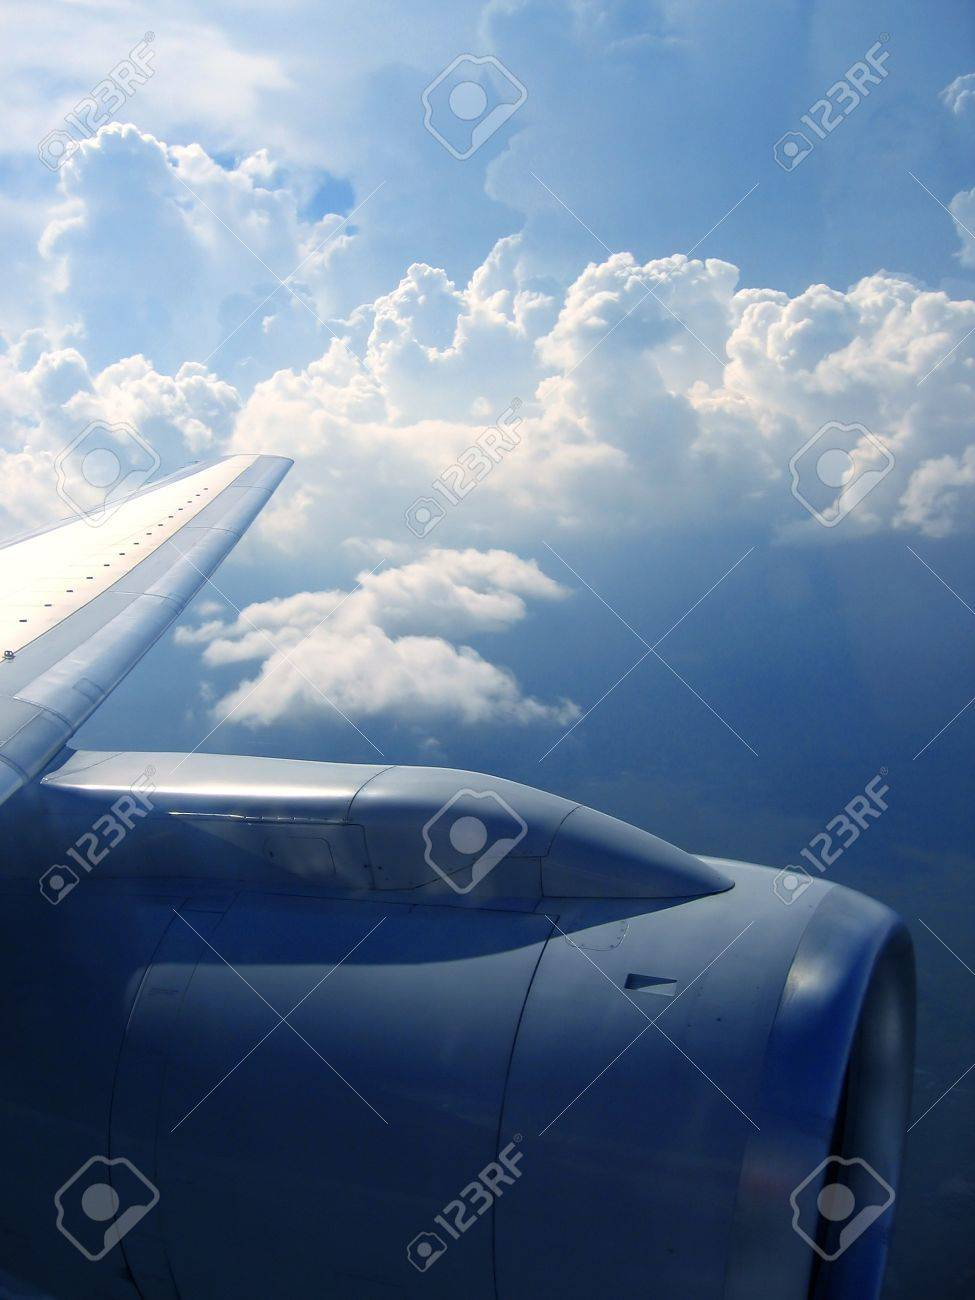 airplane reactor sky view from aircraft  clouds Stock Photo - 7240672